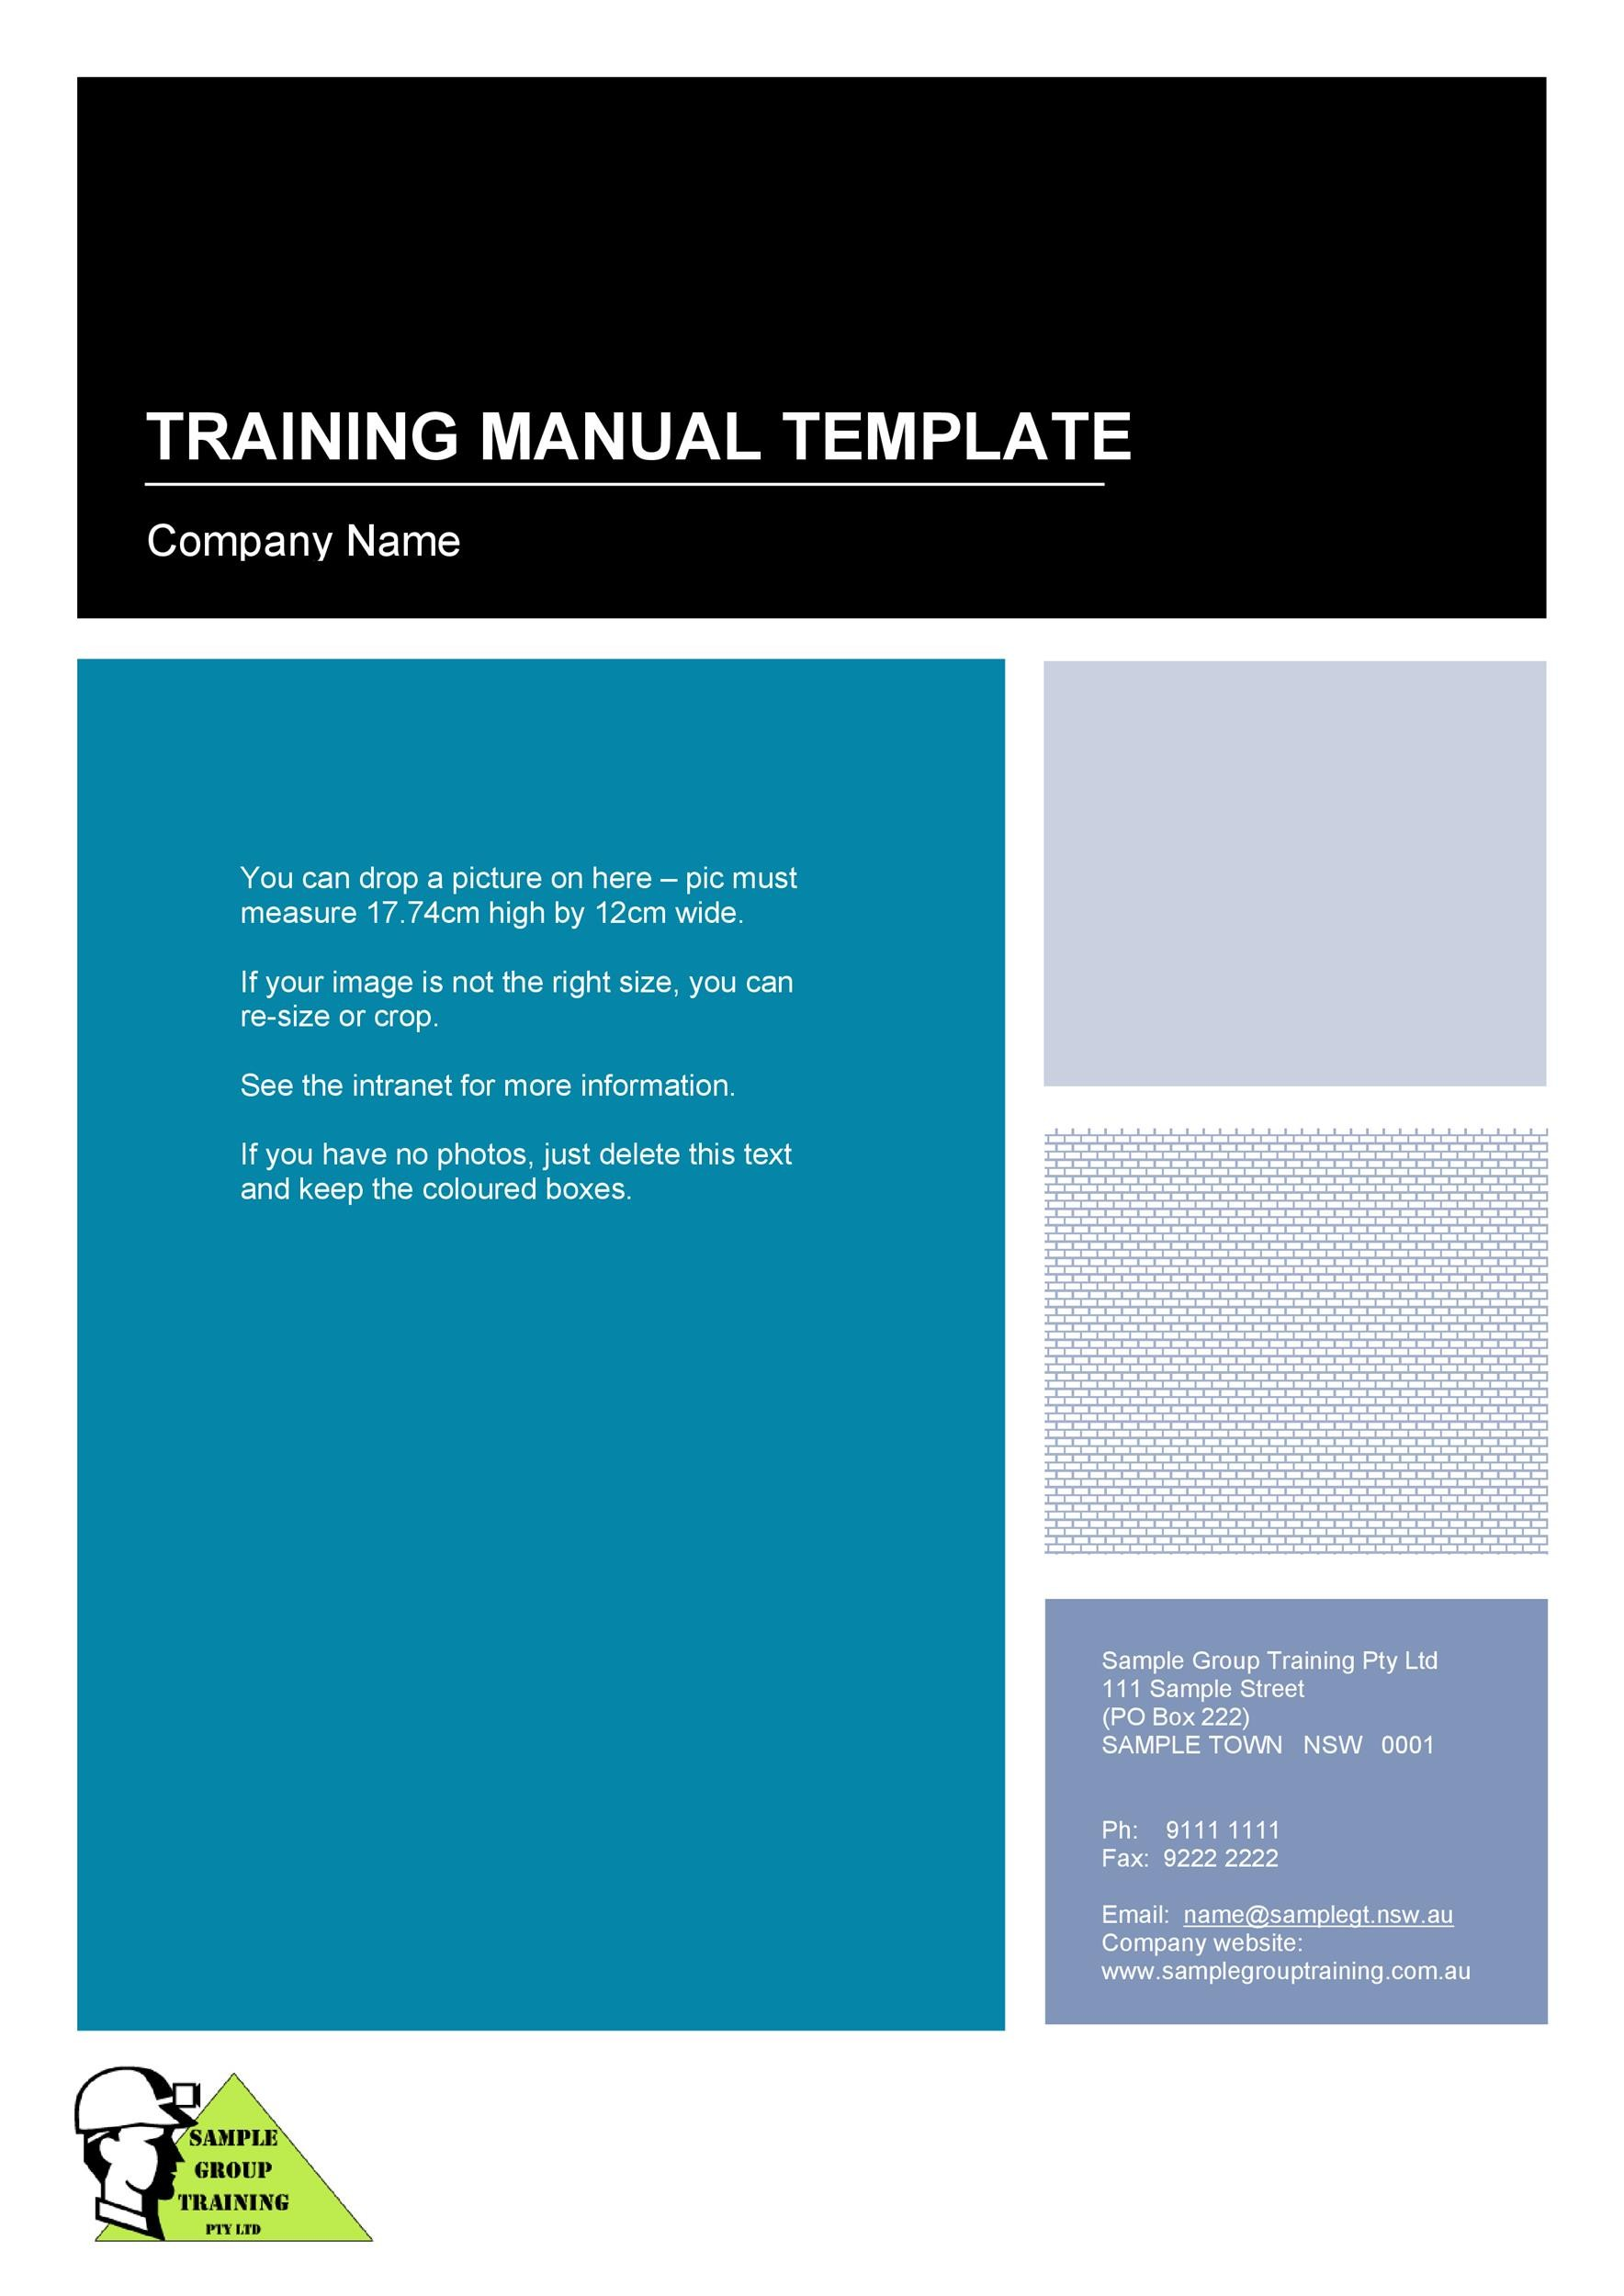 Training manual 40 free templates examples in ms word free training manual template 01 accmission